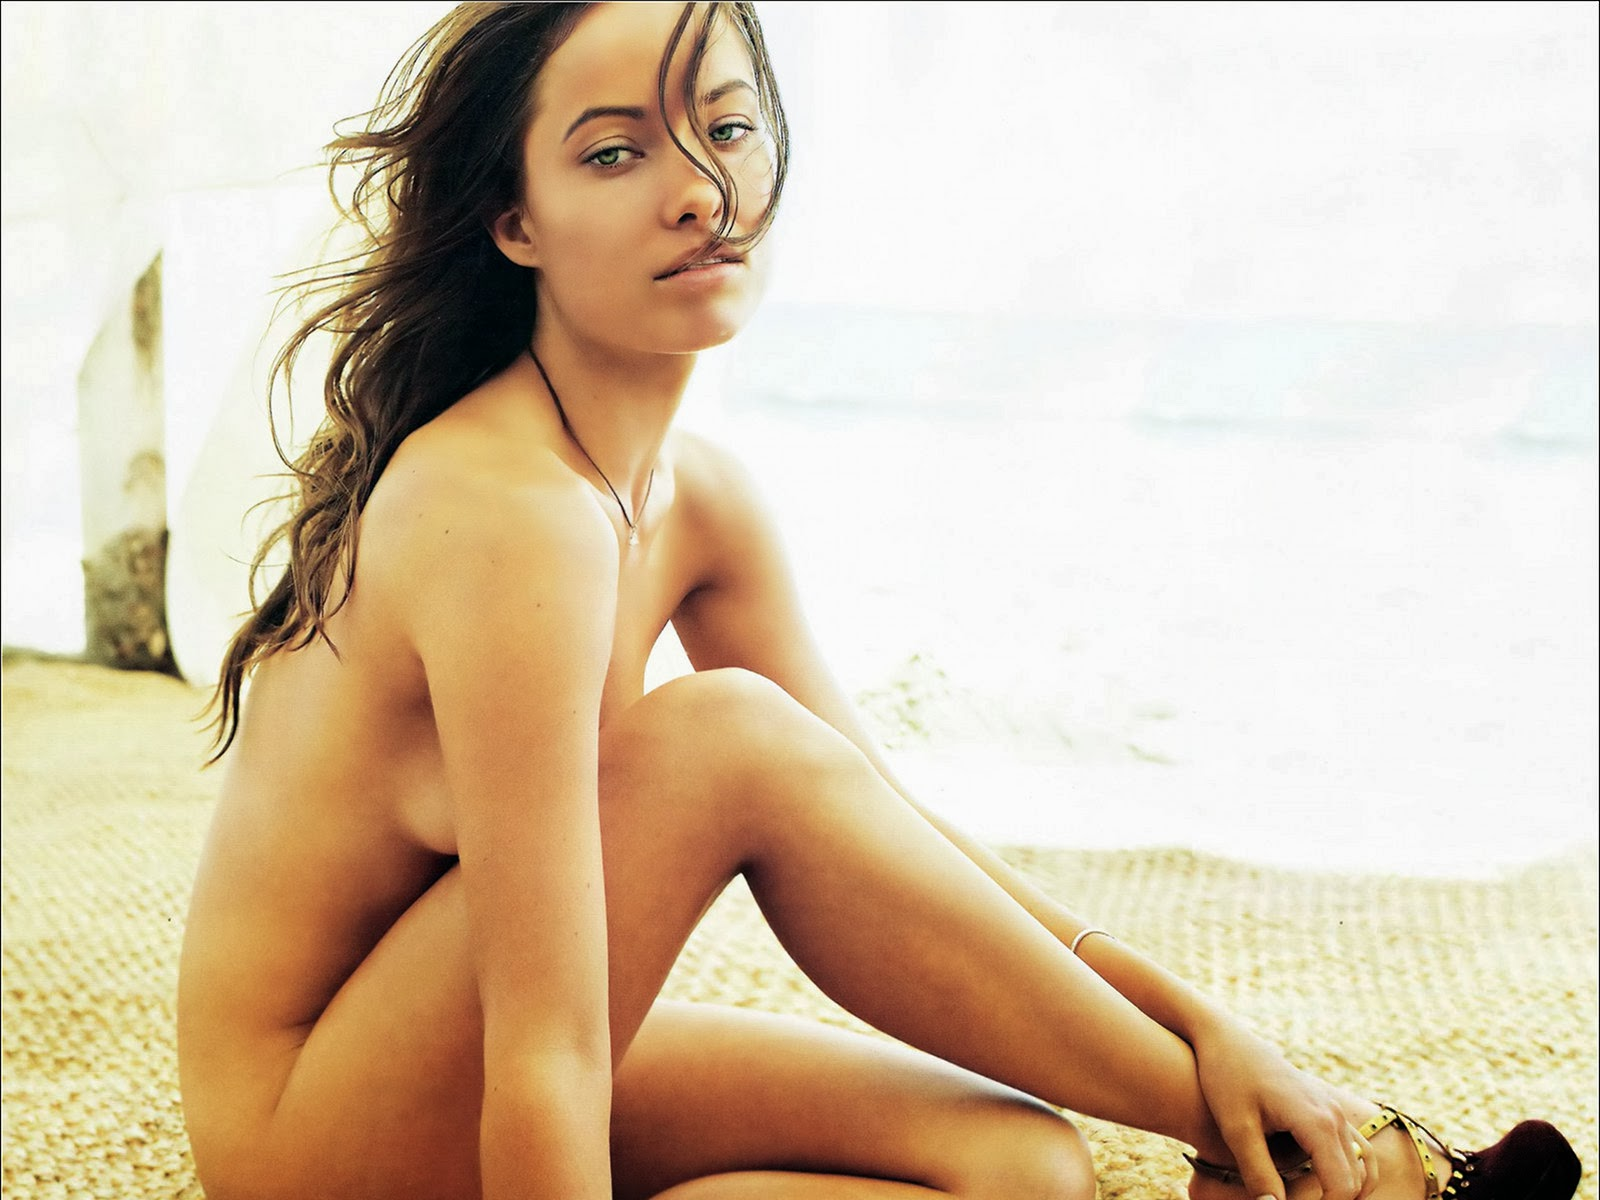 All Wallpapers In One Desktop Backgrounds Olivia Wilde Sexy And